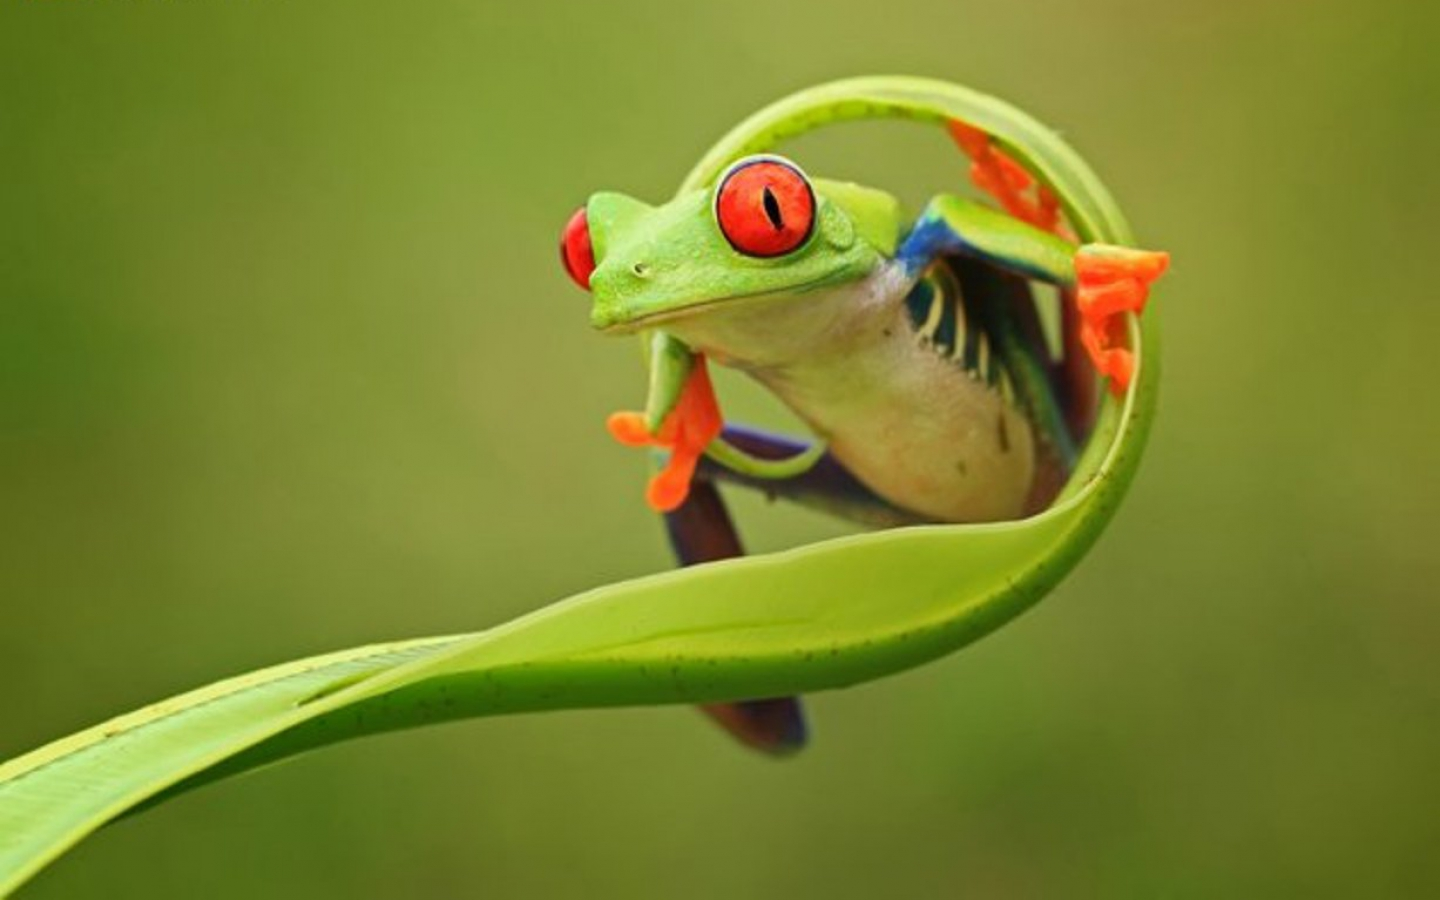 Frog Animals Wallpaper Laptops